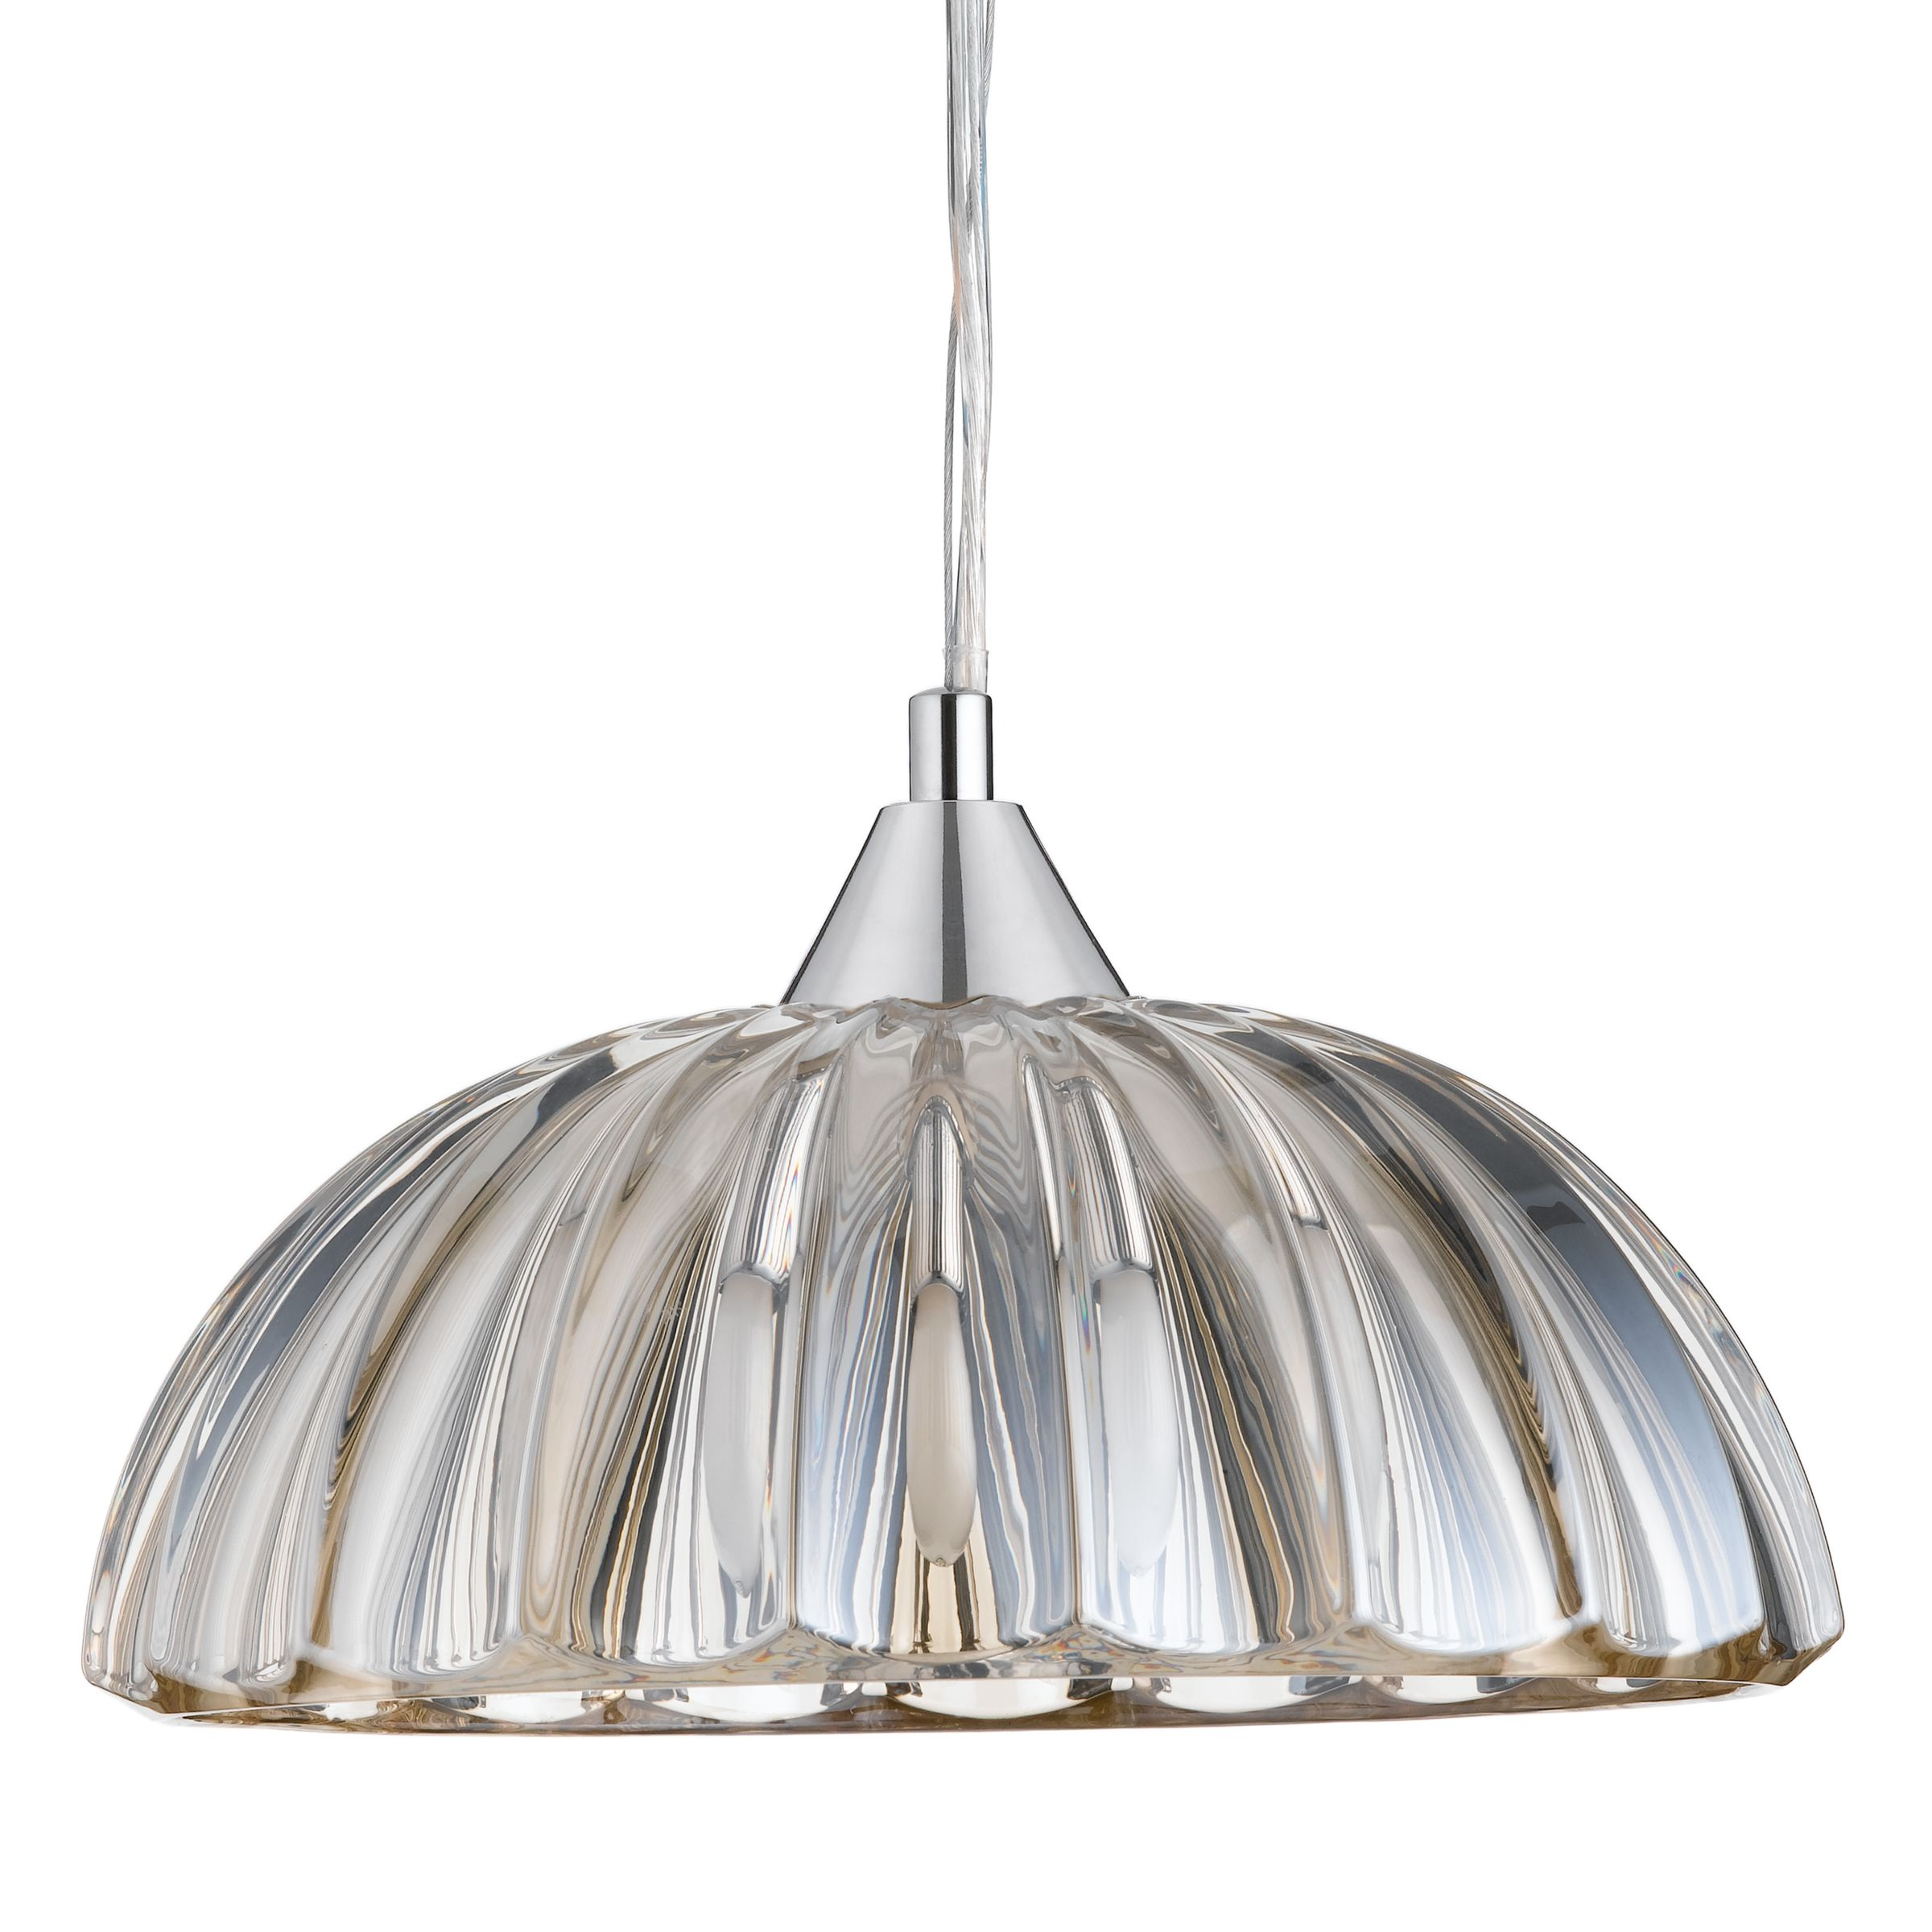 Ceiling Light Fittings At John Lewis : John lewis anais ceiling light champagne review